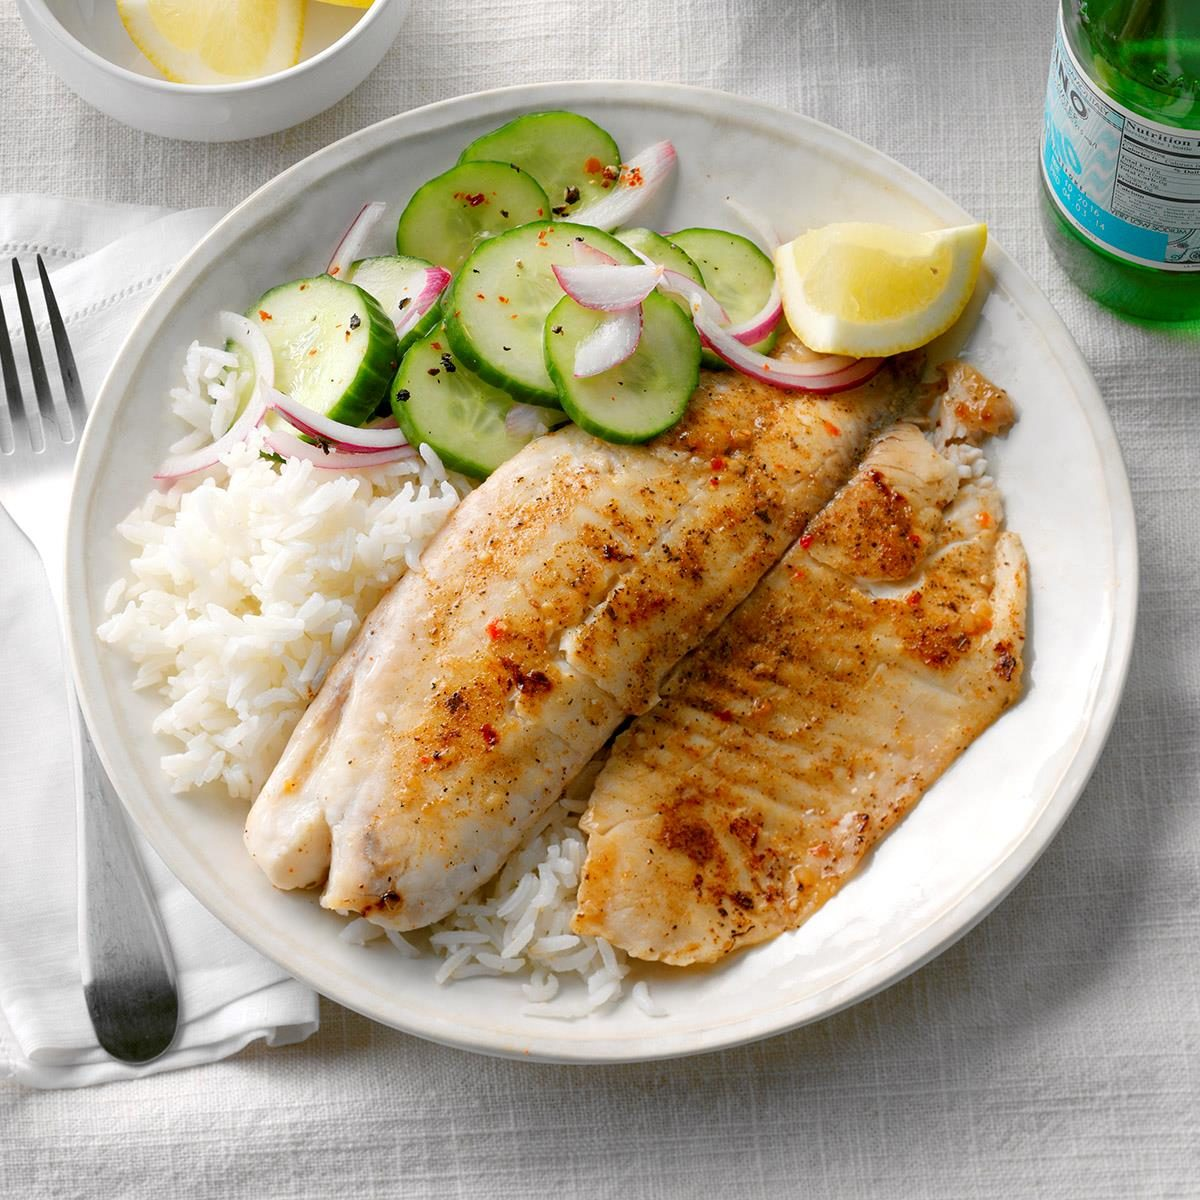 Tilapia with jasmine rice recipe taste of home for Fish and rice recipes